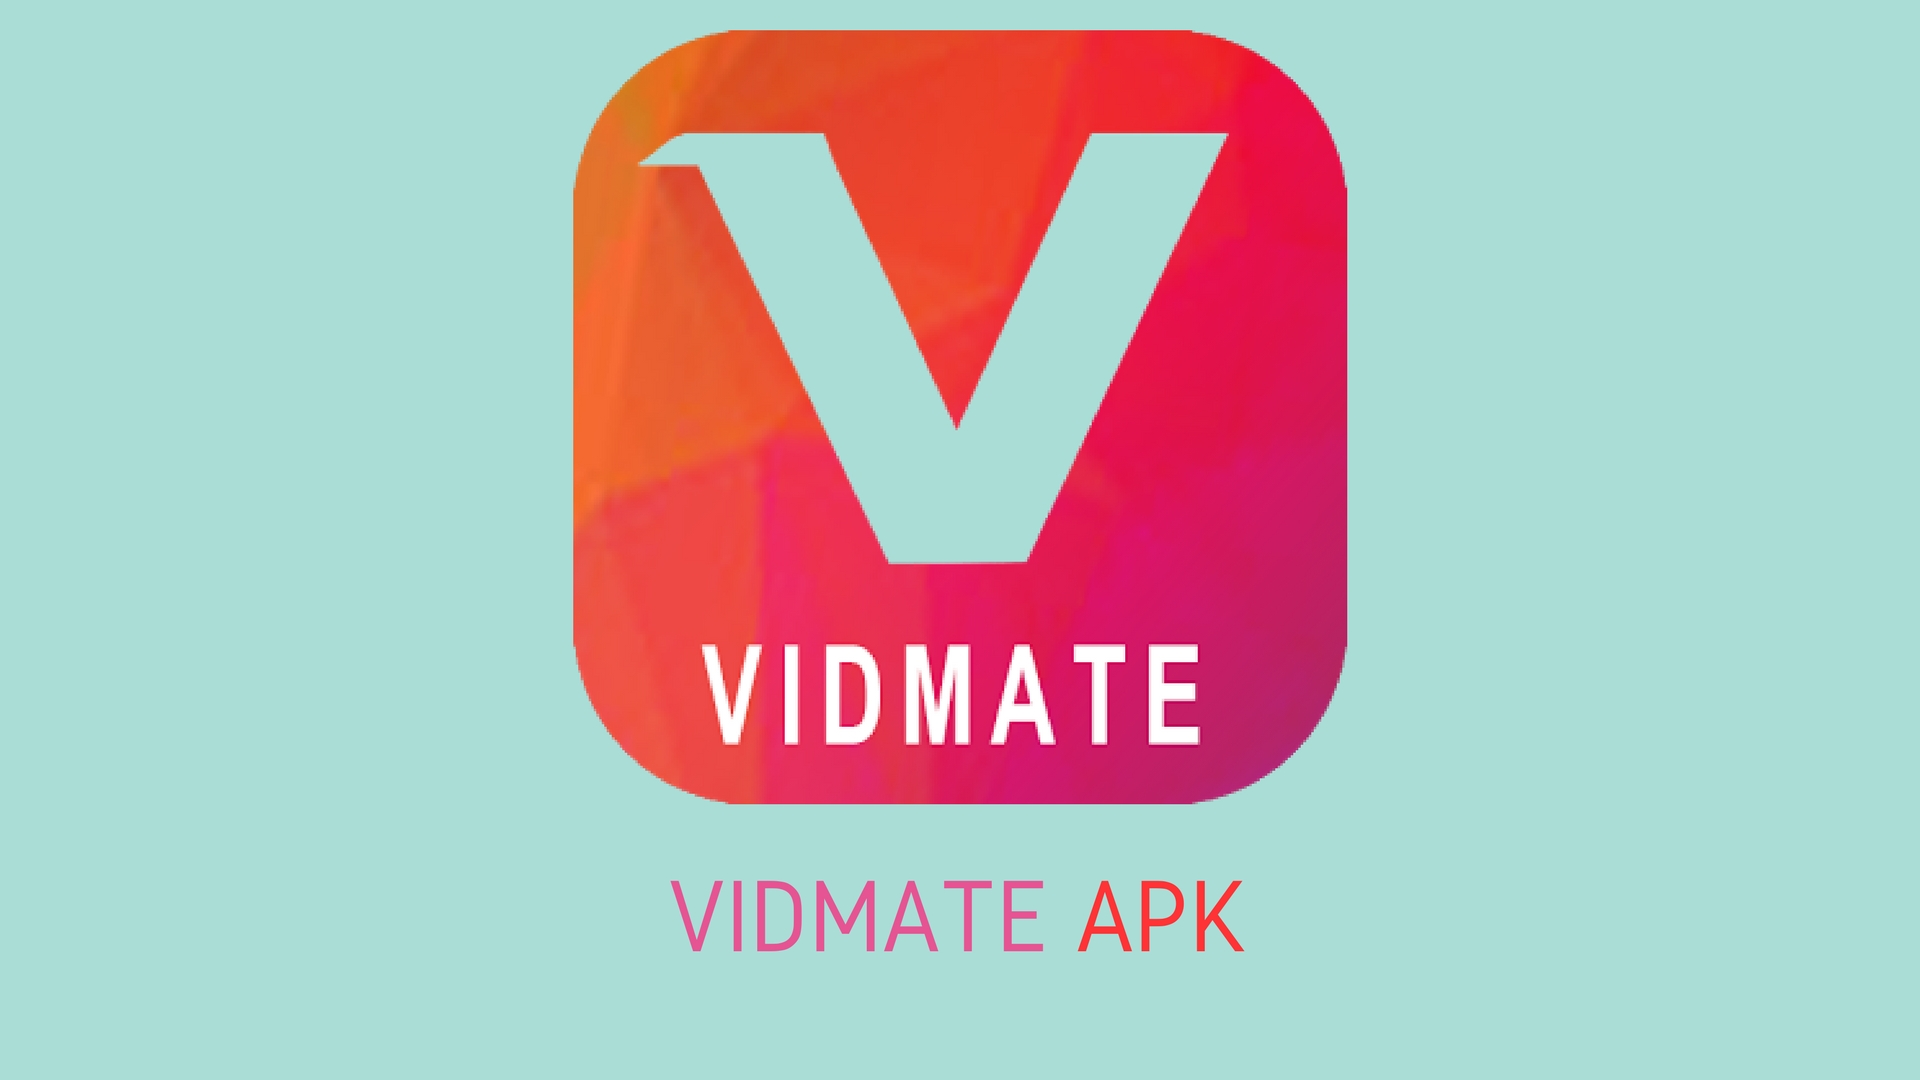 Access updated features of vidmate apk in android device